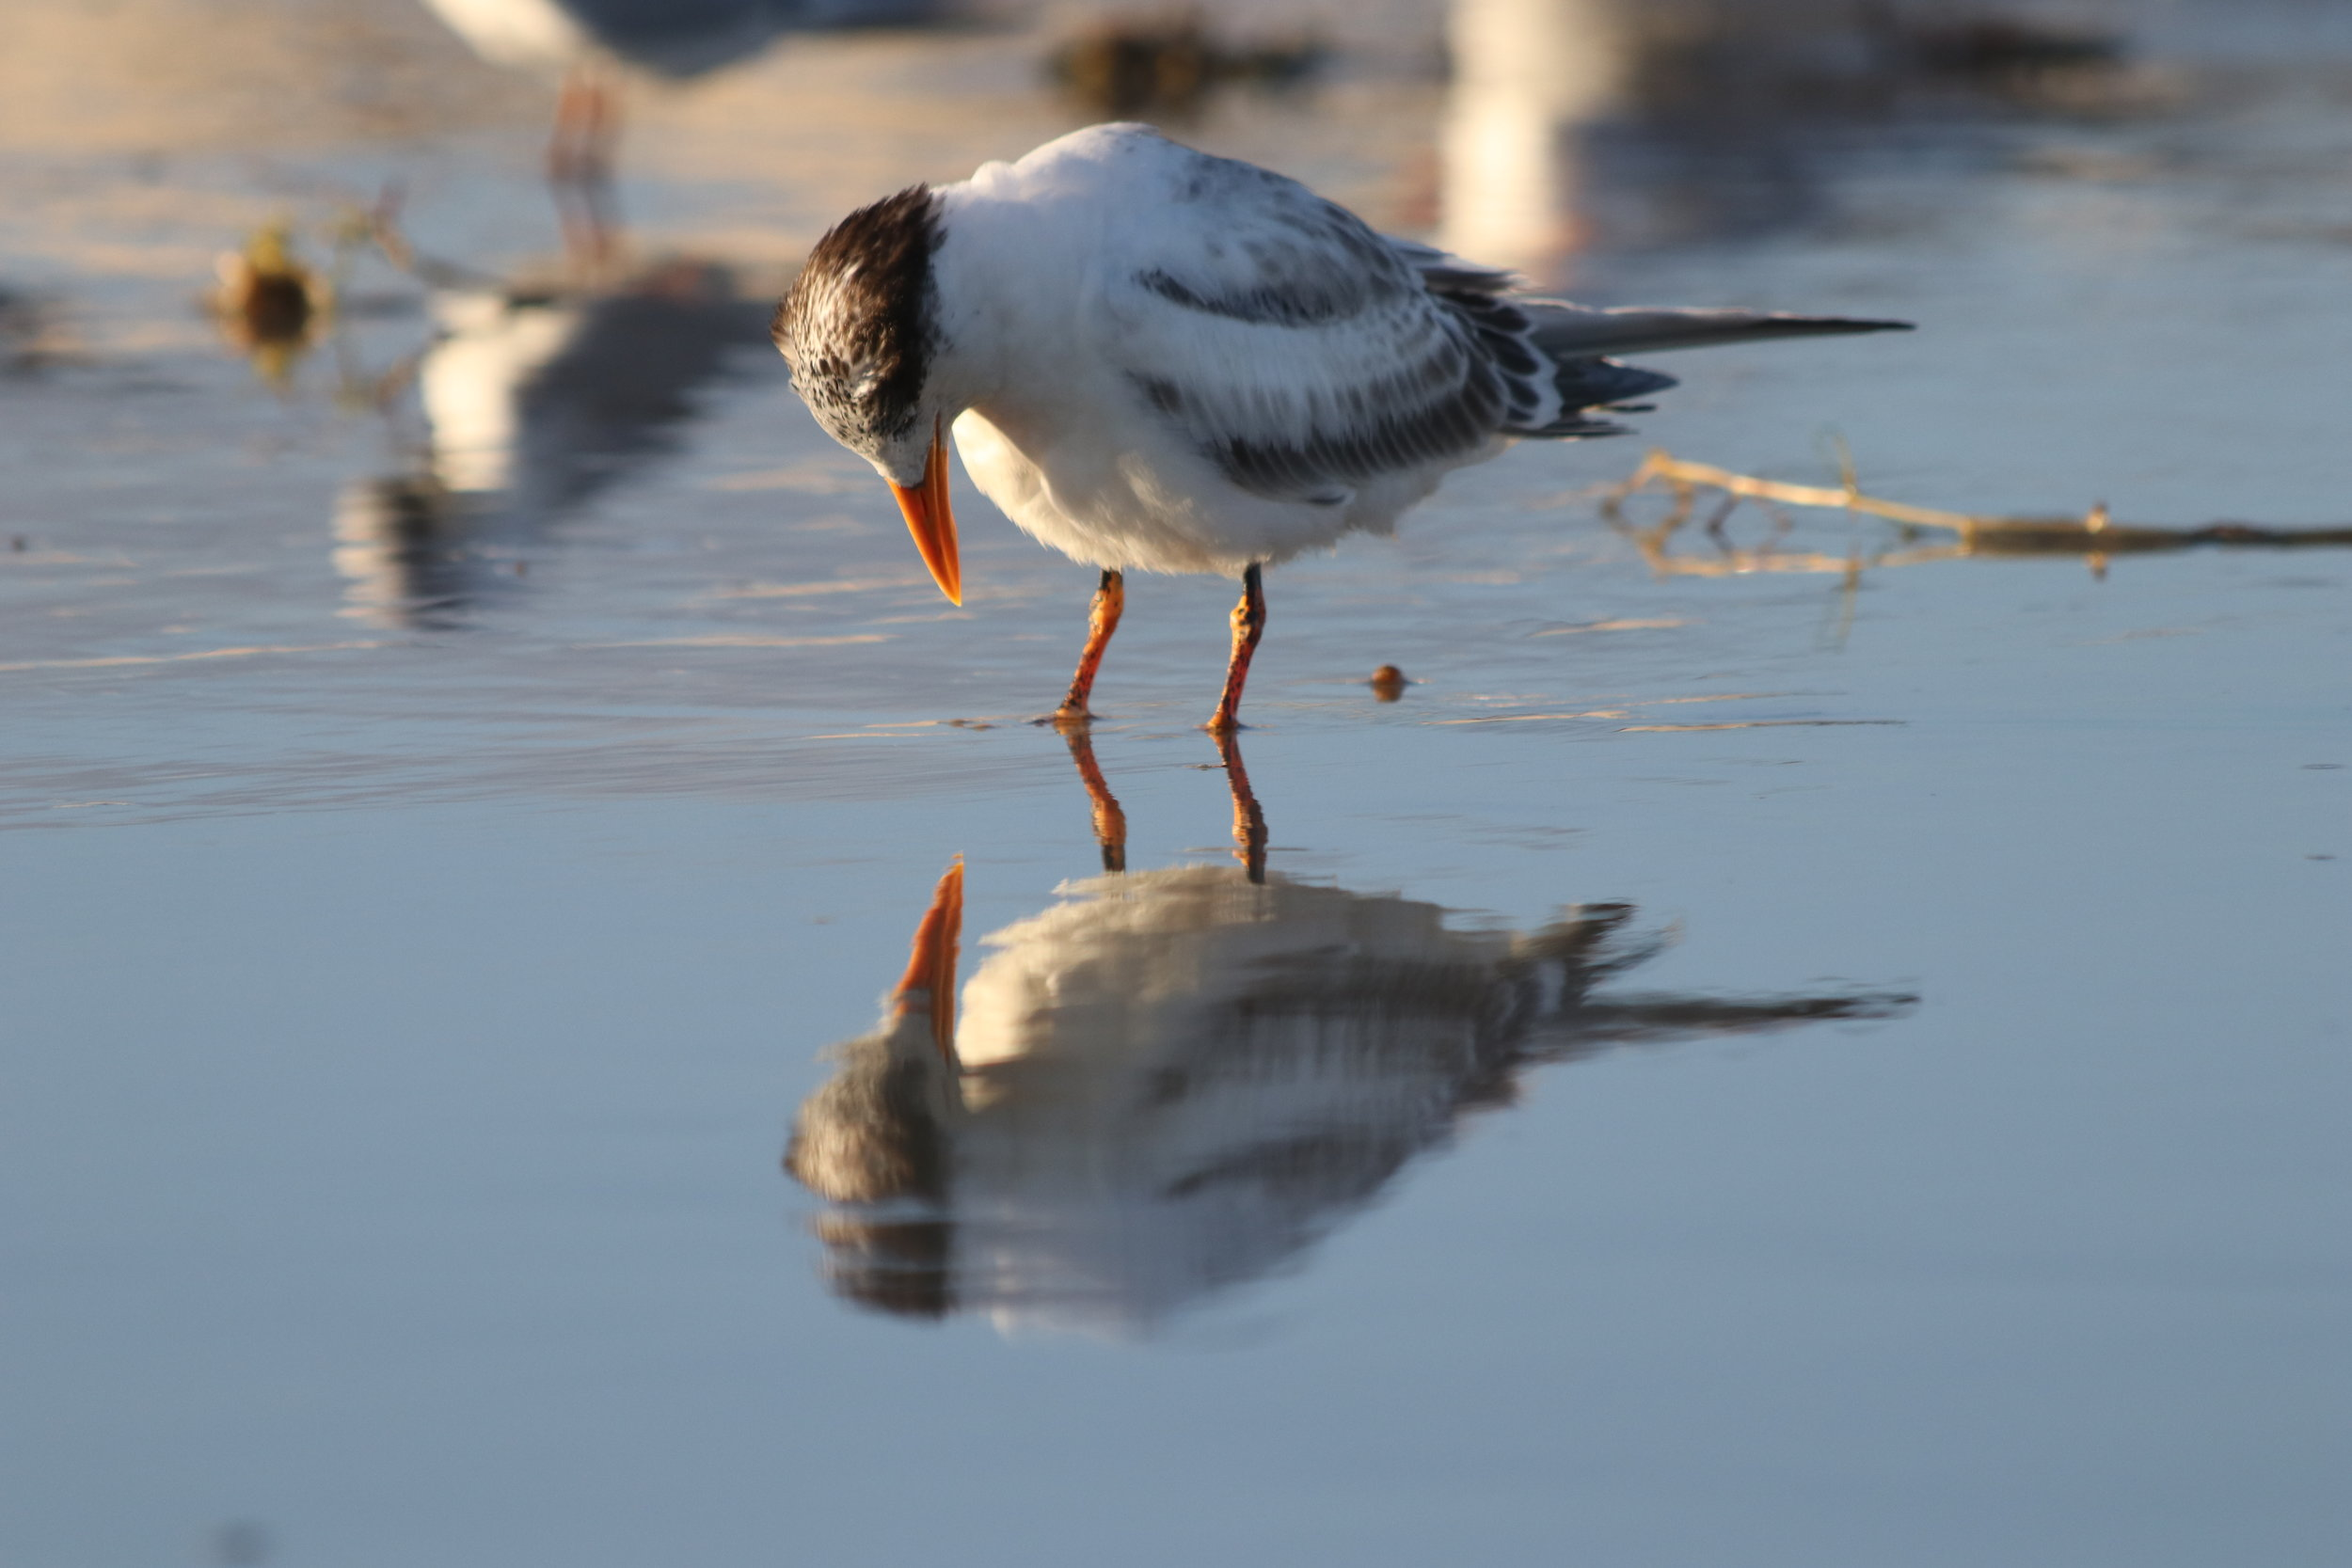 Grace the Tern, Fall in Love with Yourself